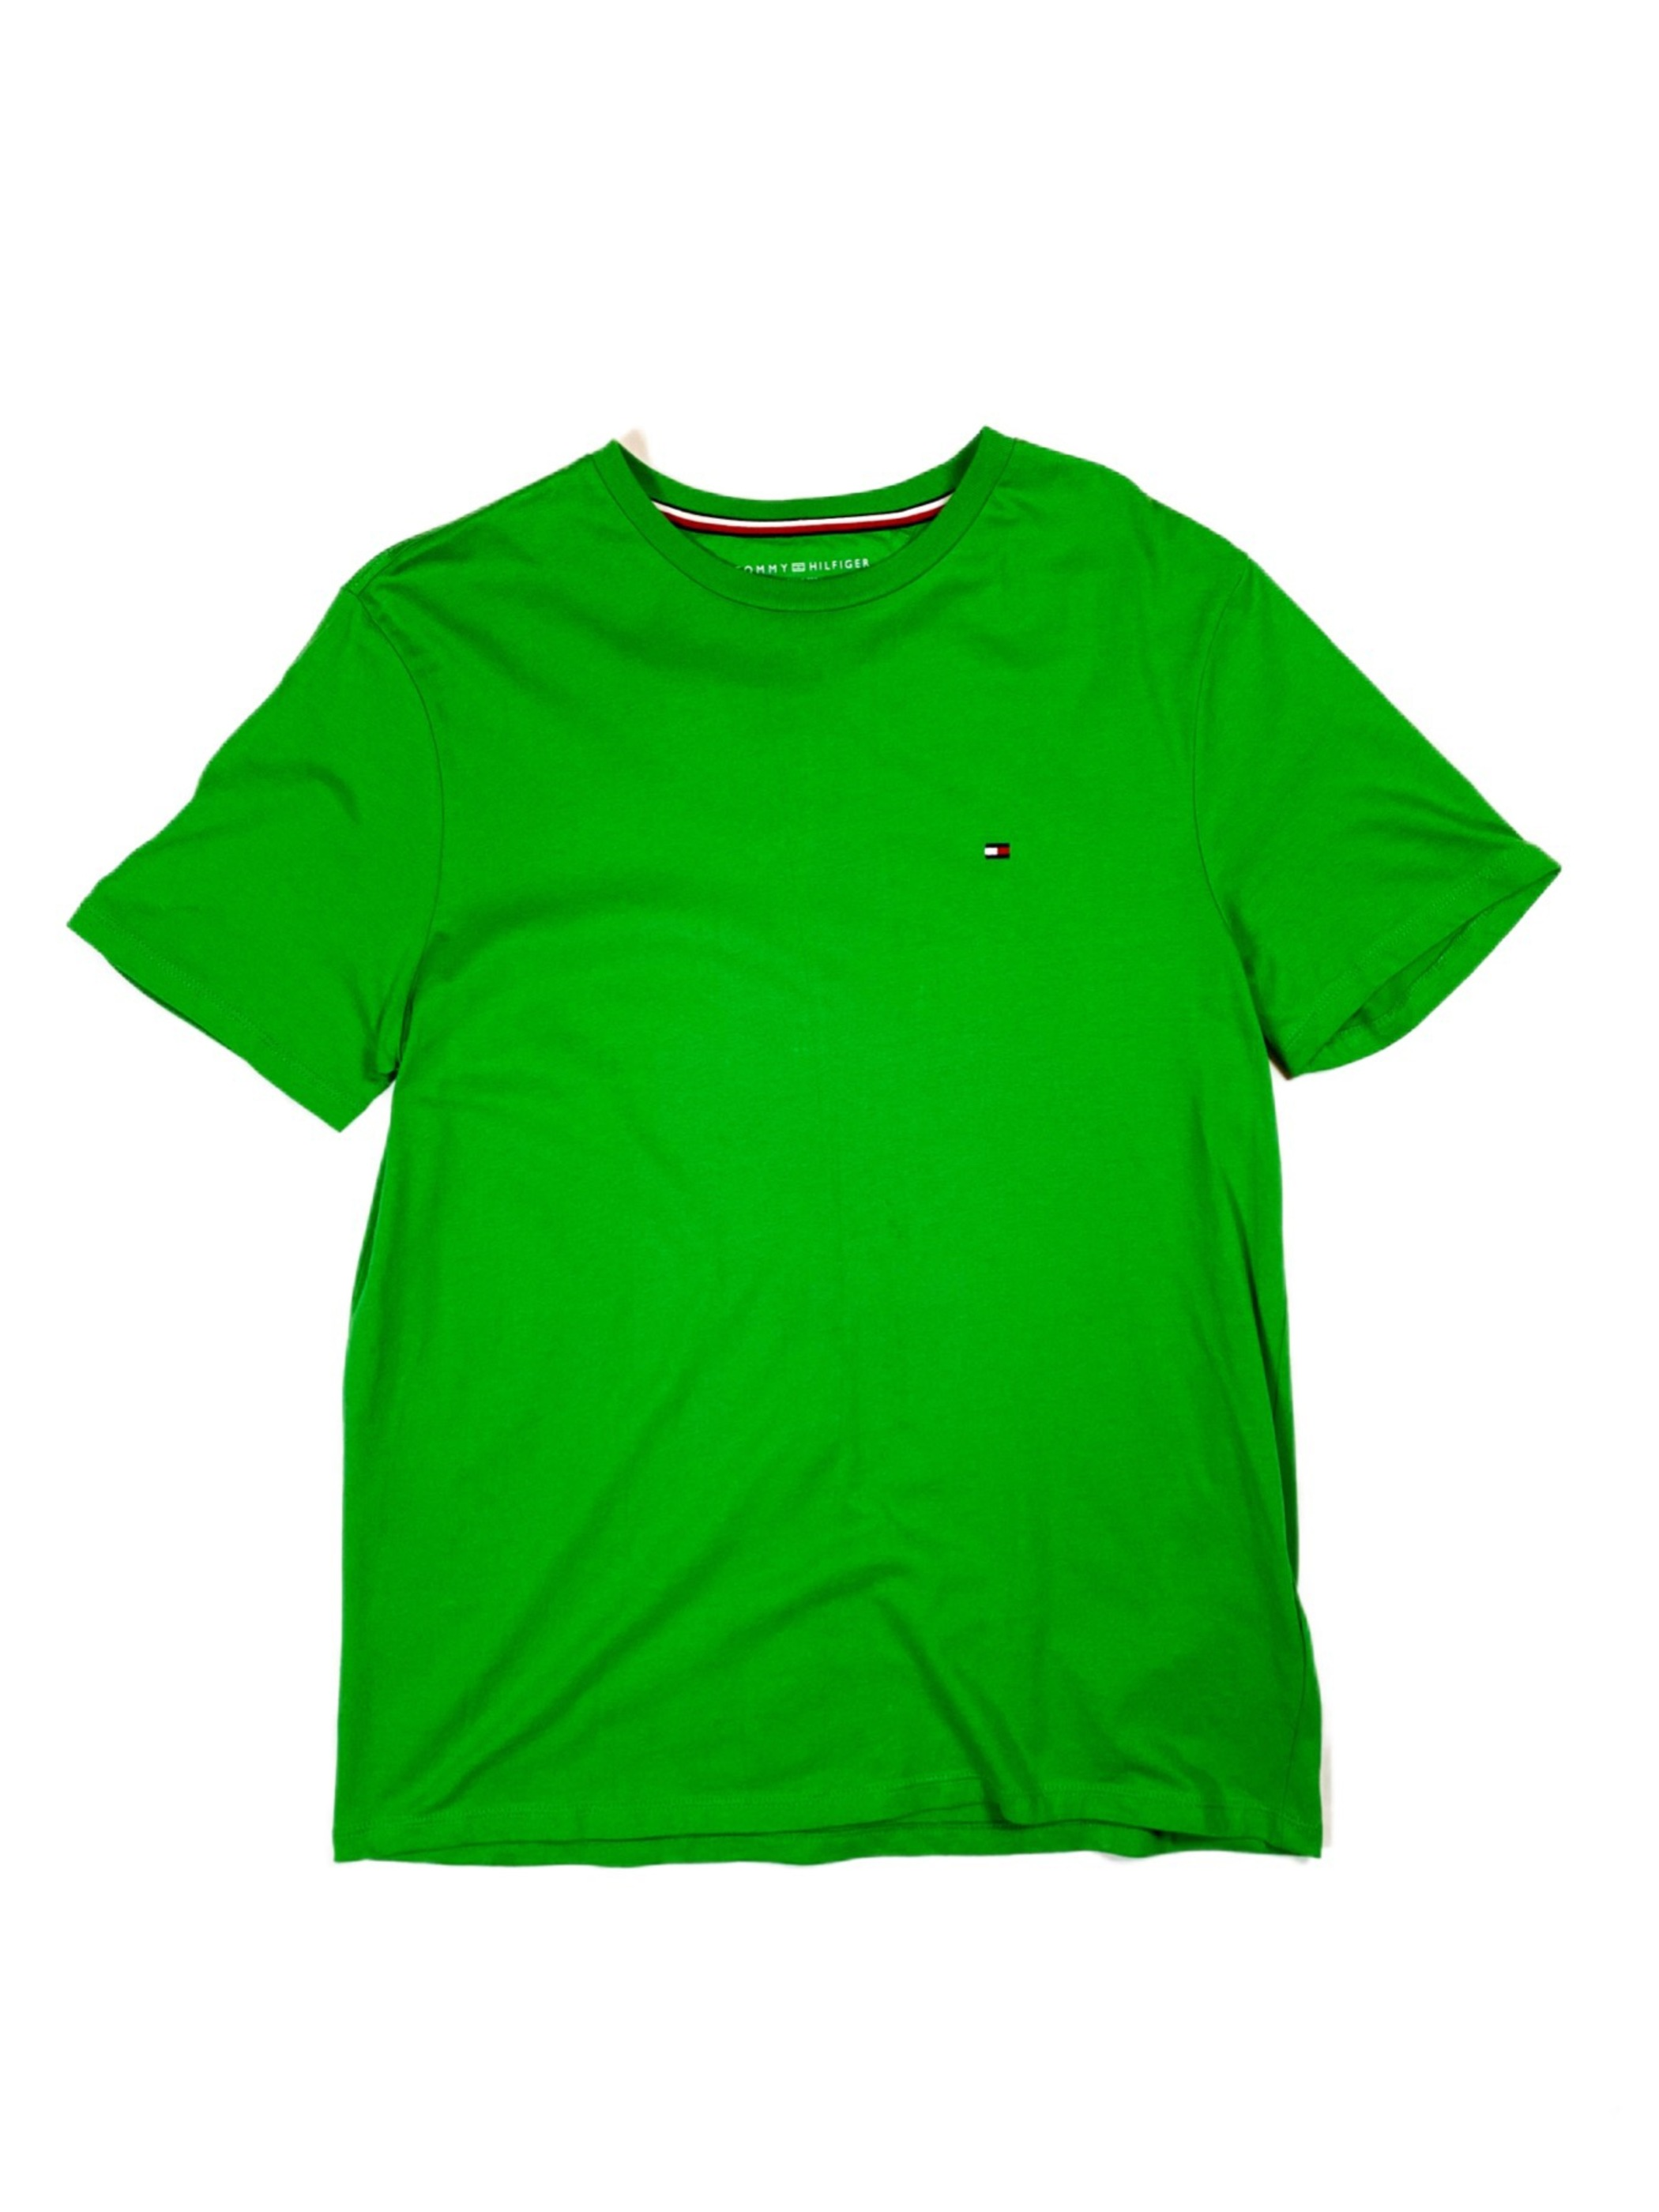 TOMMY HILFIGER one point tee(green)